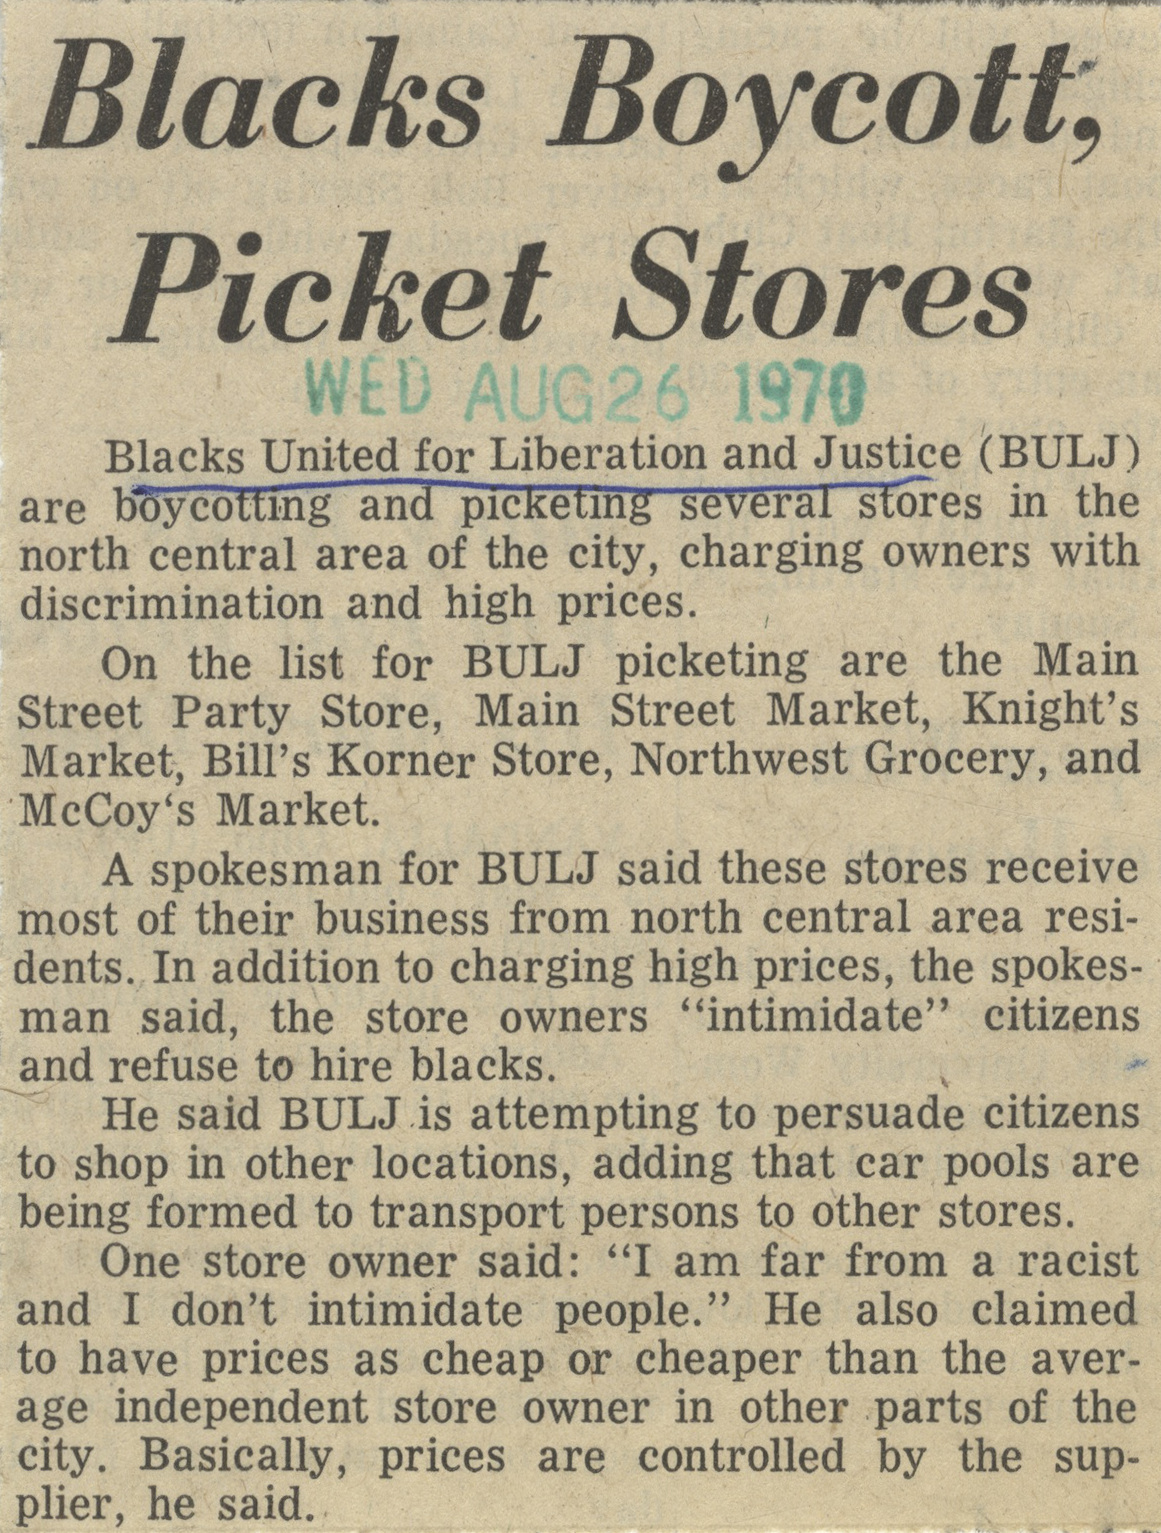 Blacks Boycott, Pickett Stores image